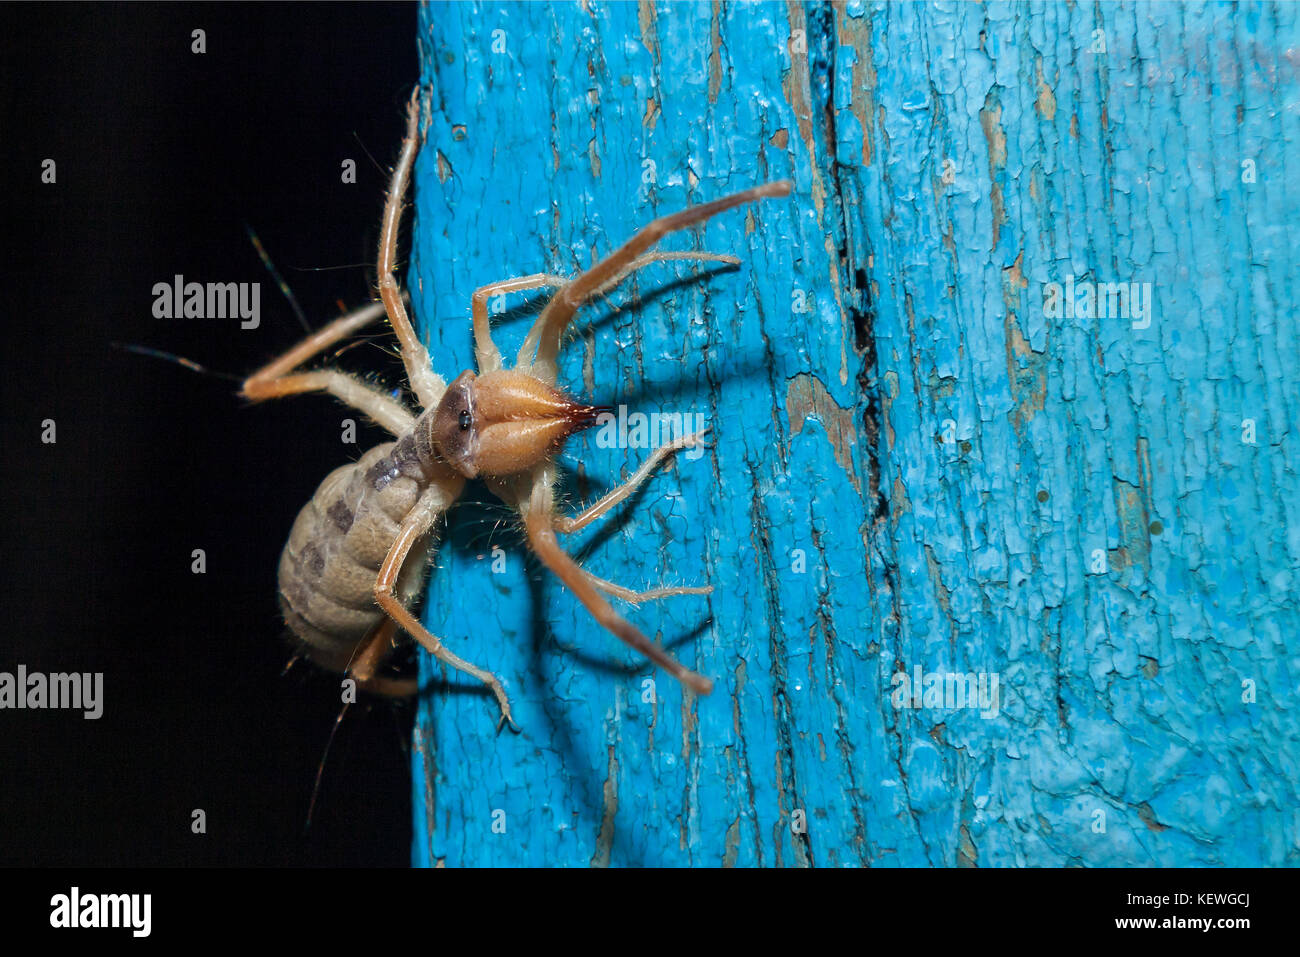 big unknown spider - Stock Image